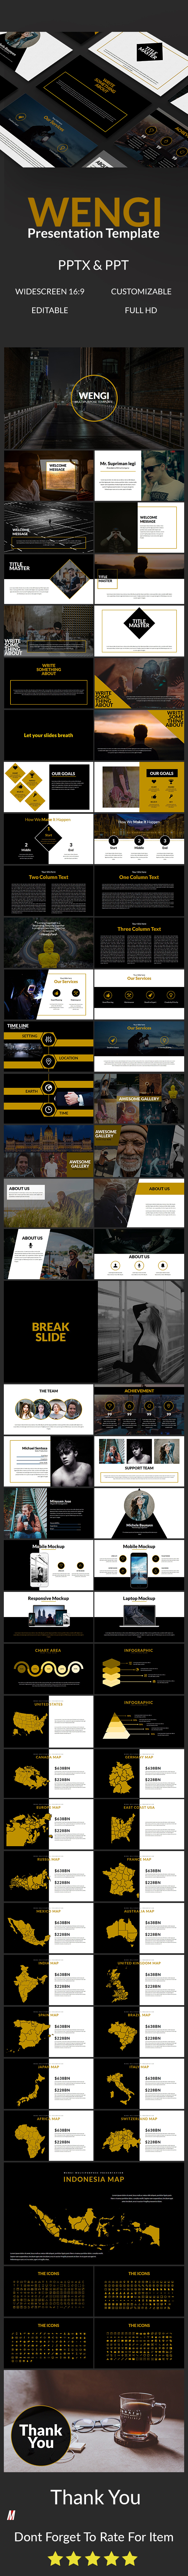 Wengi Multipurpose Template - Abstract PowerPoint Templates